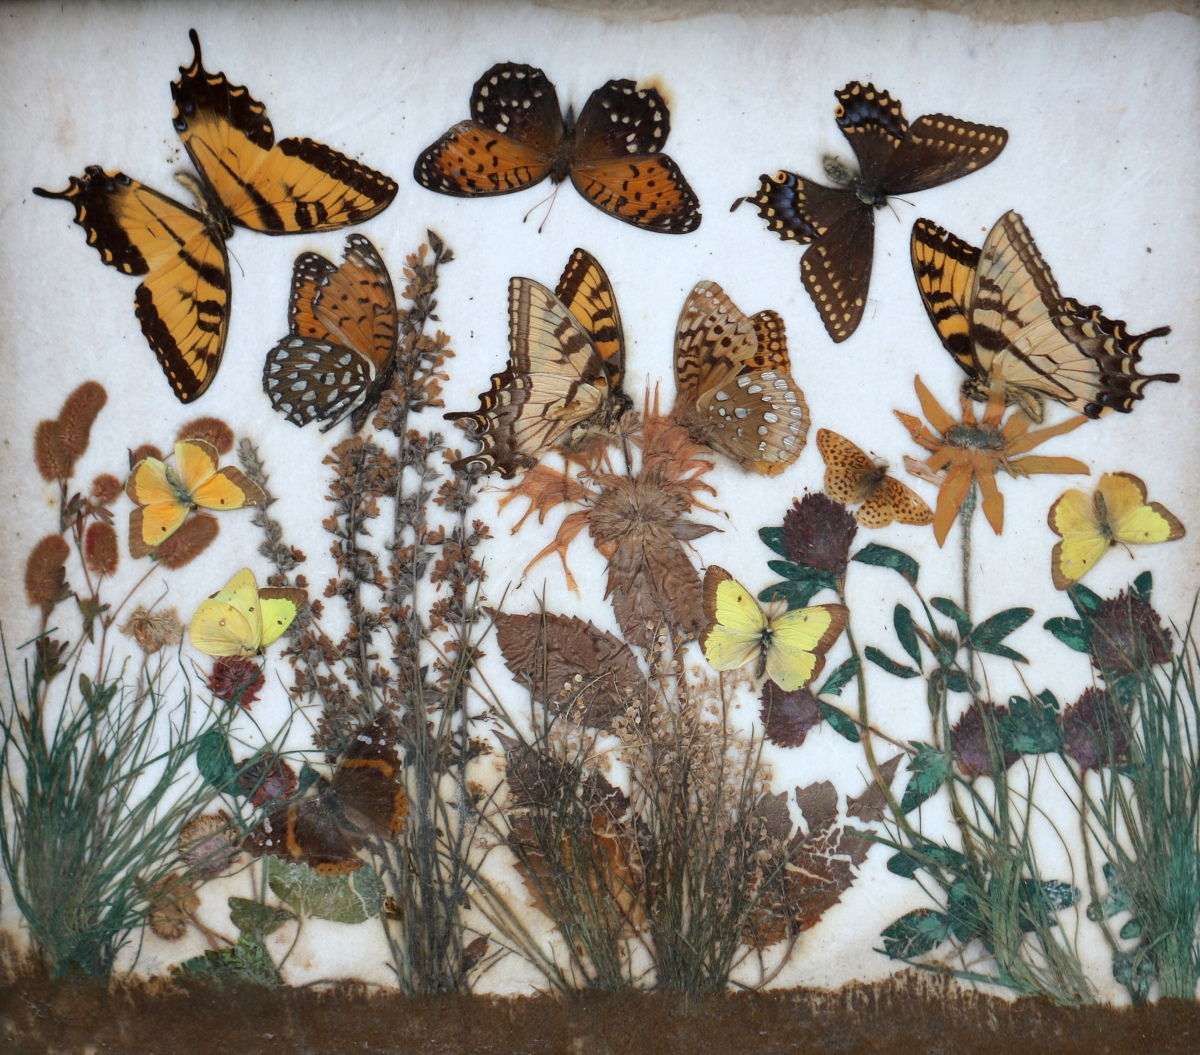 Butterfly Diorama